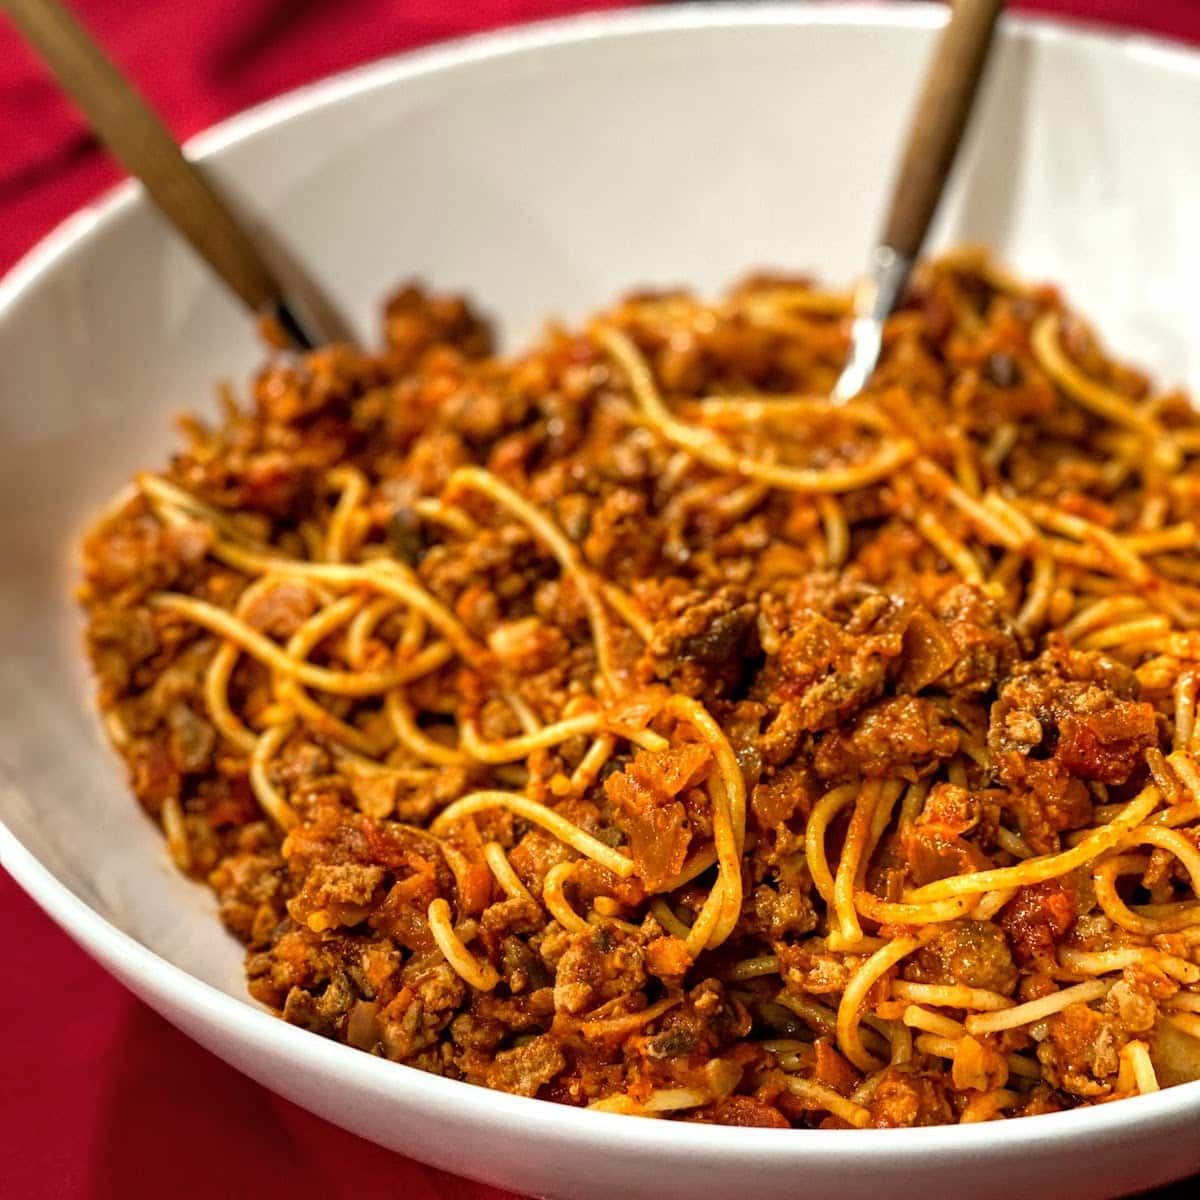 white, big bowl of spaghetti with meat sauce on red tablecloth